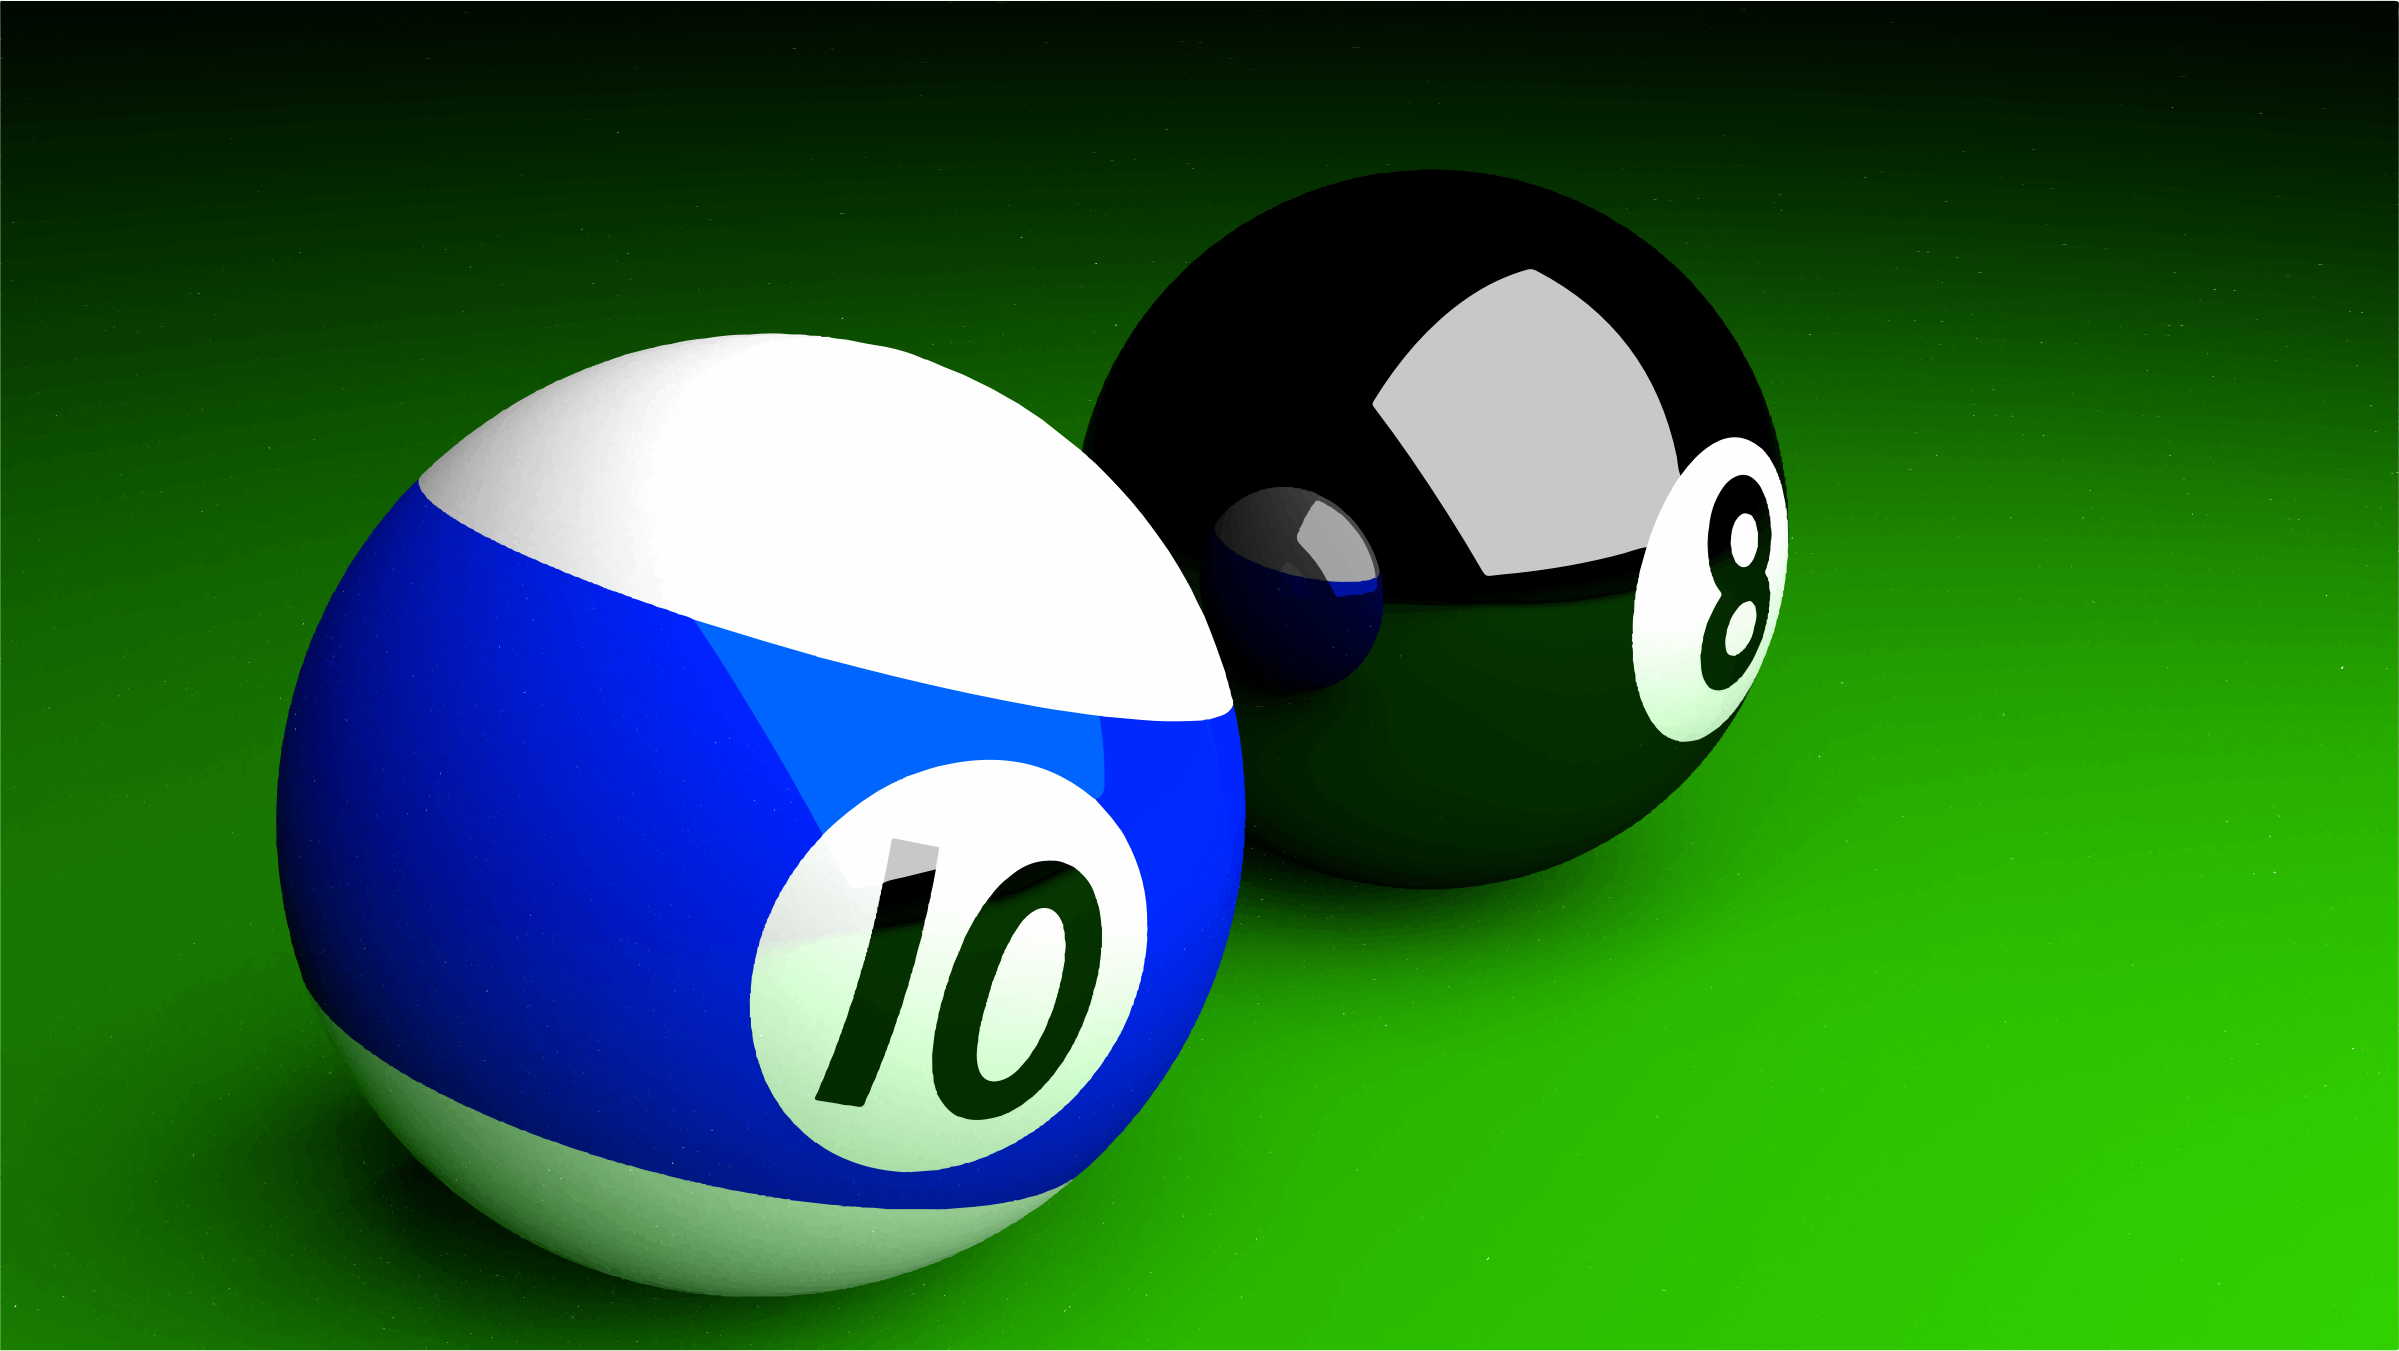 https://openclipart.org/image/2400px/svg_to_png/221587/Billiards.png